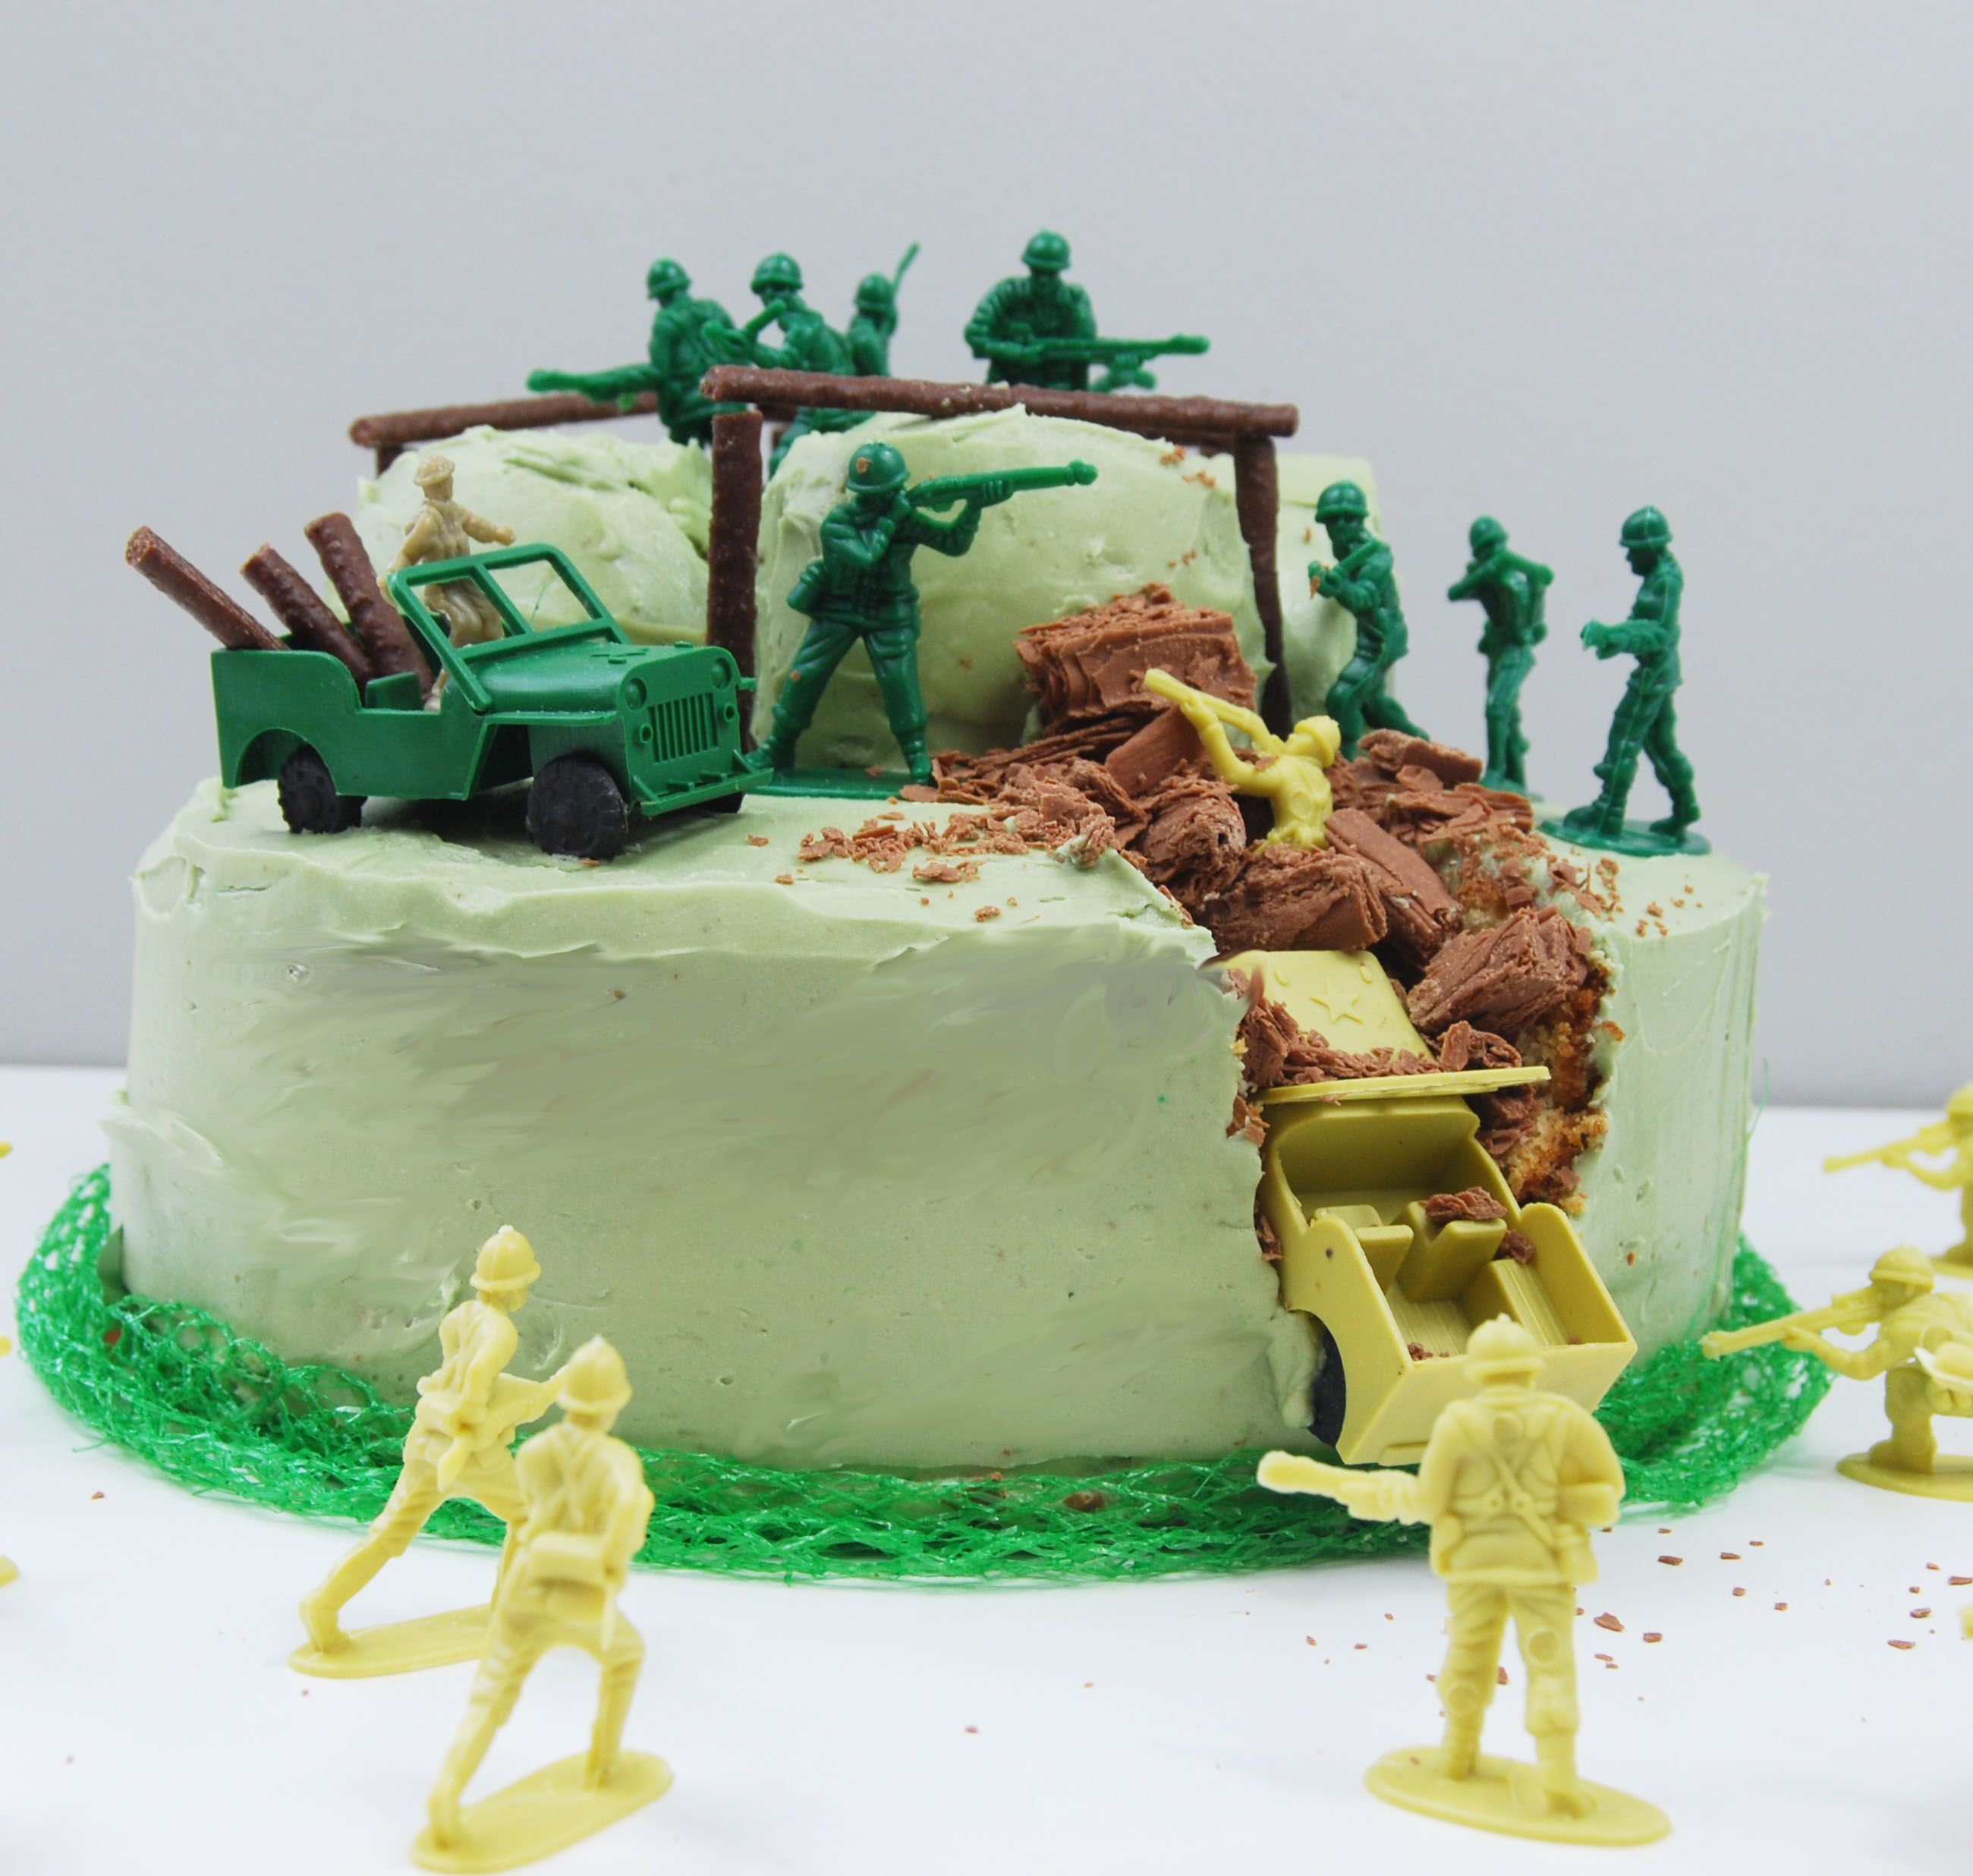 Army birthday cake CraftCrumb kits make baking birthday cakes